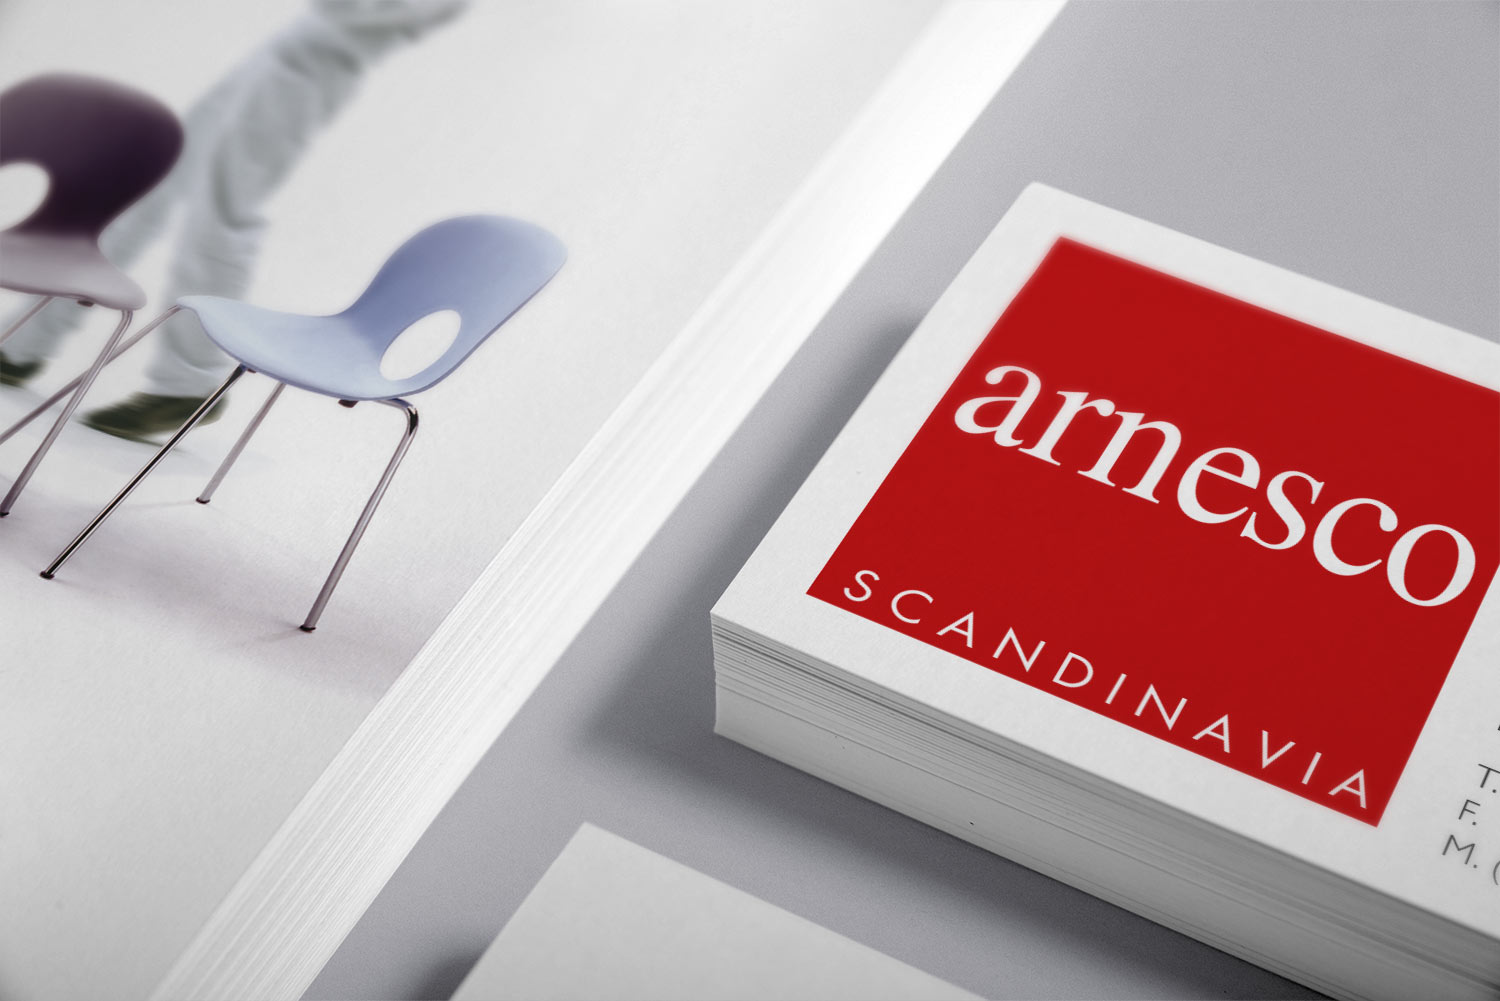 Arnesco Scandinavia